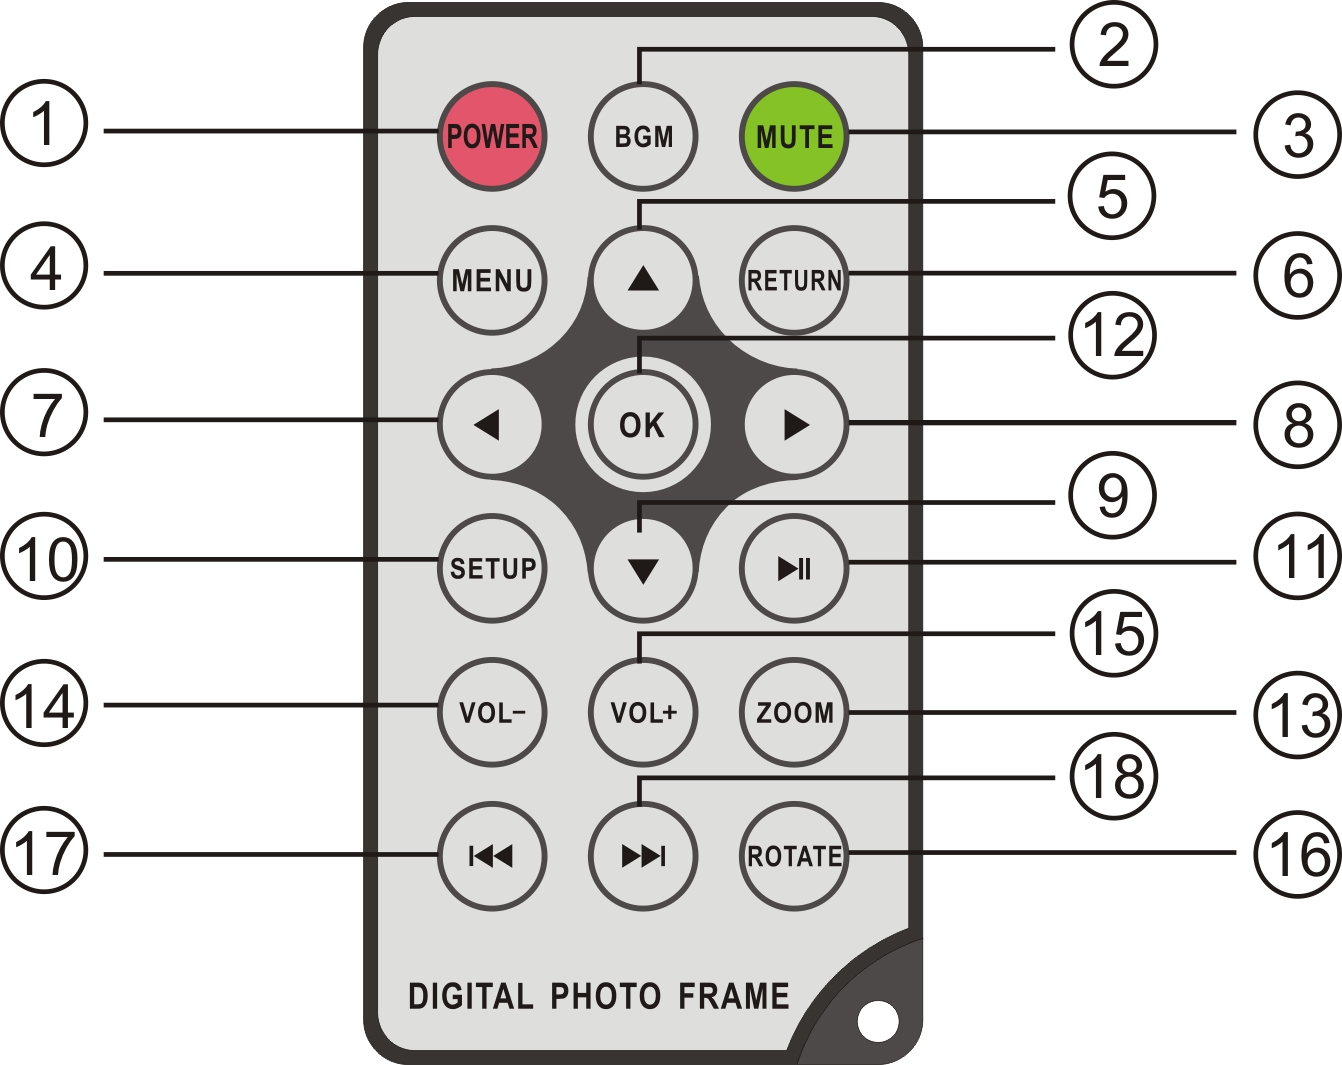 1 Product Diagram 1.1 Remote Control 1) POWER Switch On/Off 2) BGM Press to start slide show with background music 3) MUTE Press Mute button to silence the voice temporarily.